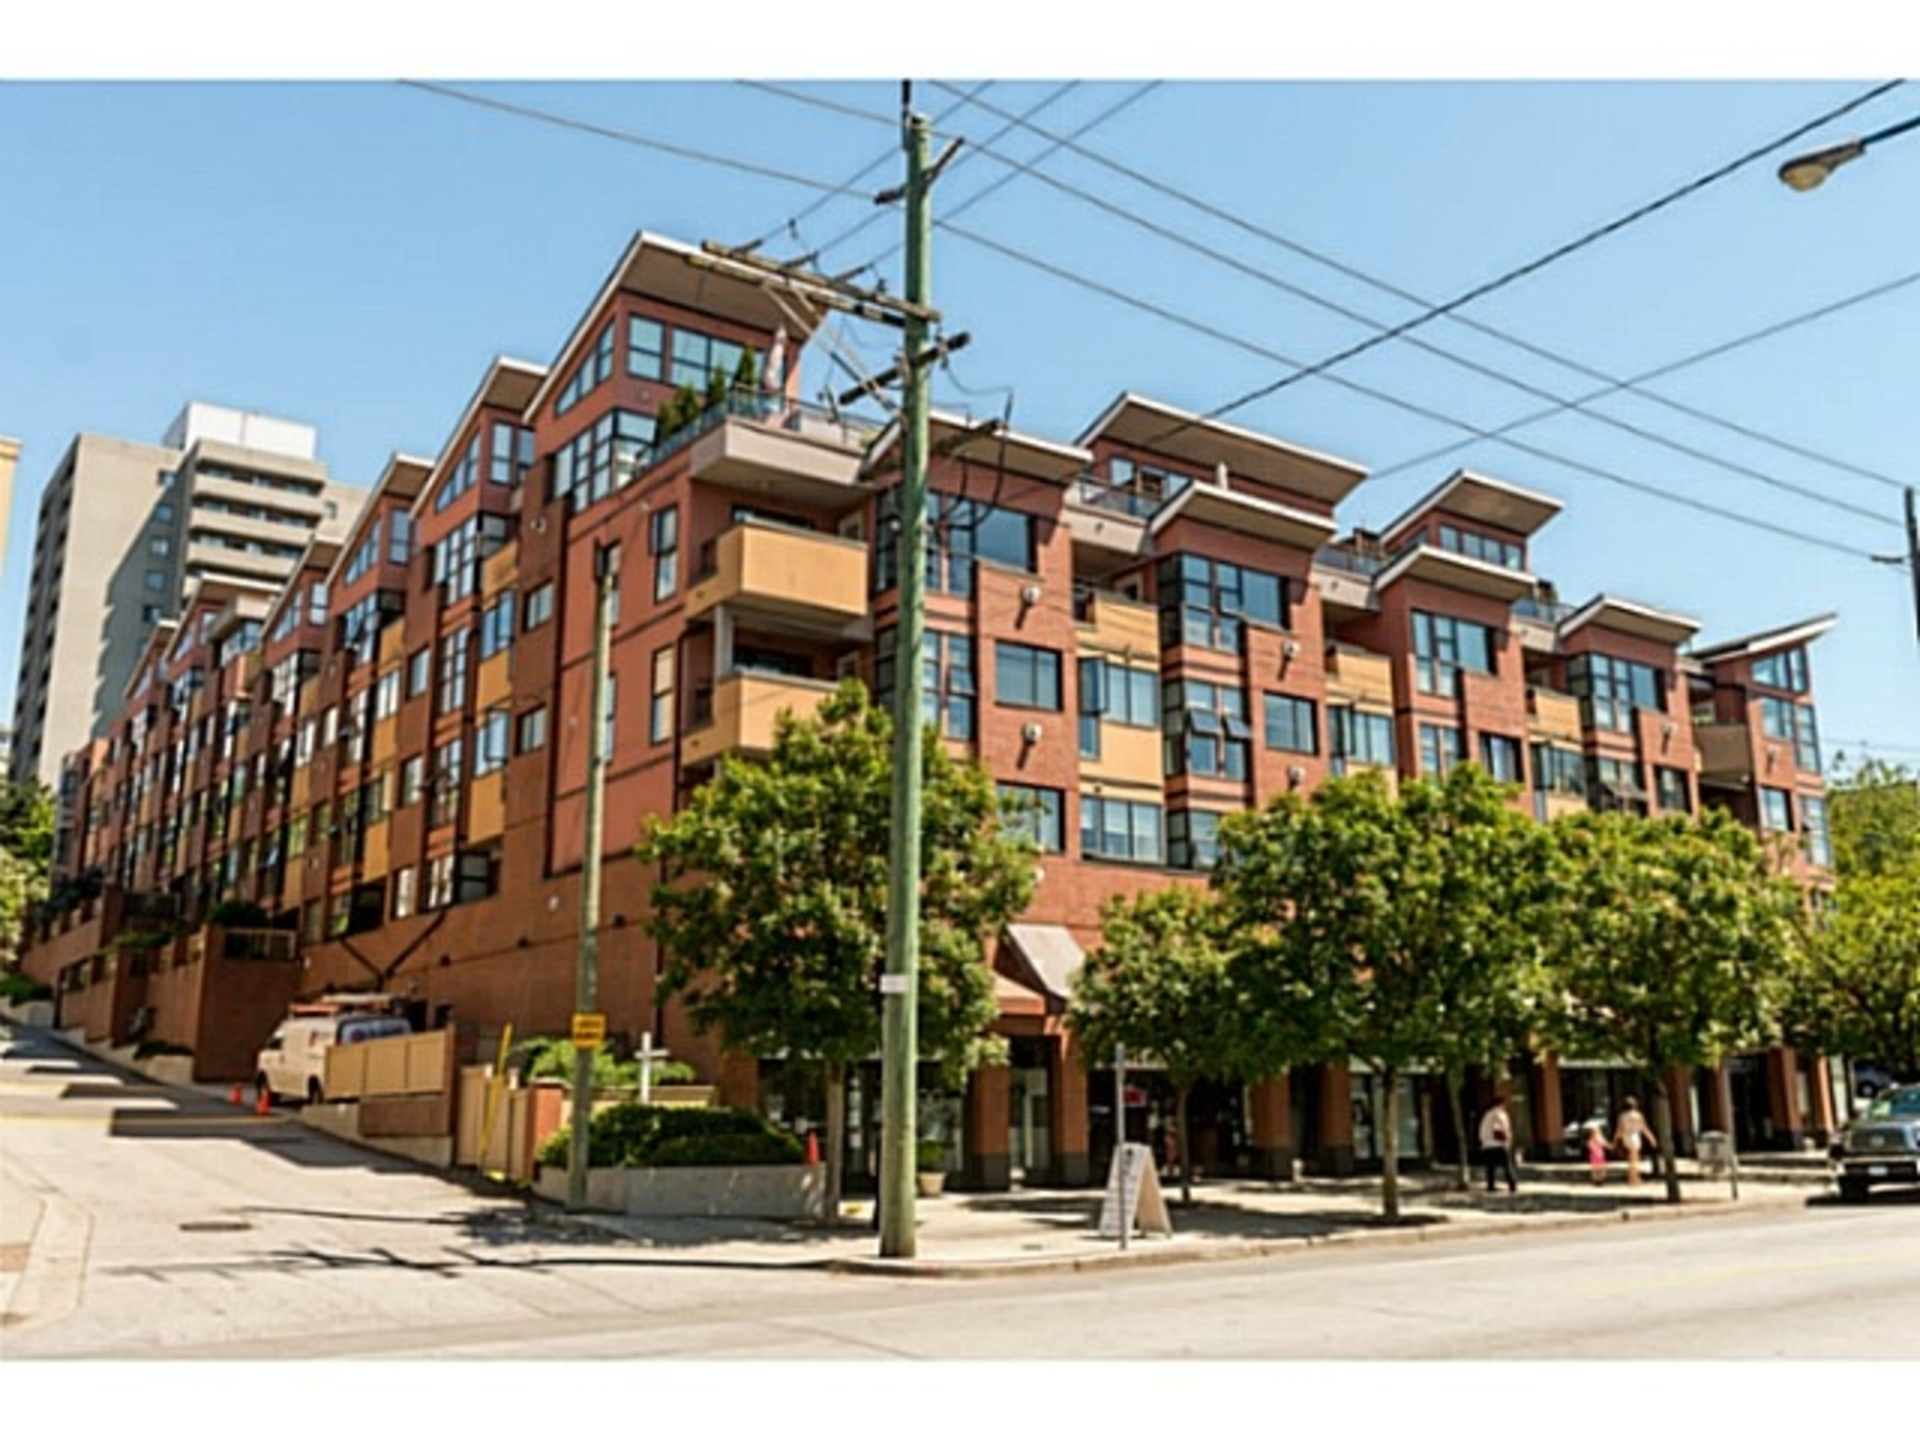 345 LONSDALE AVENUE, Lower Lonsdale, North Vancouver